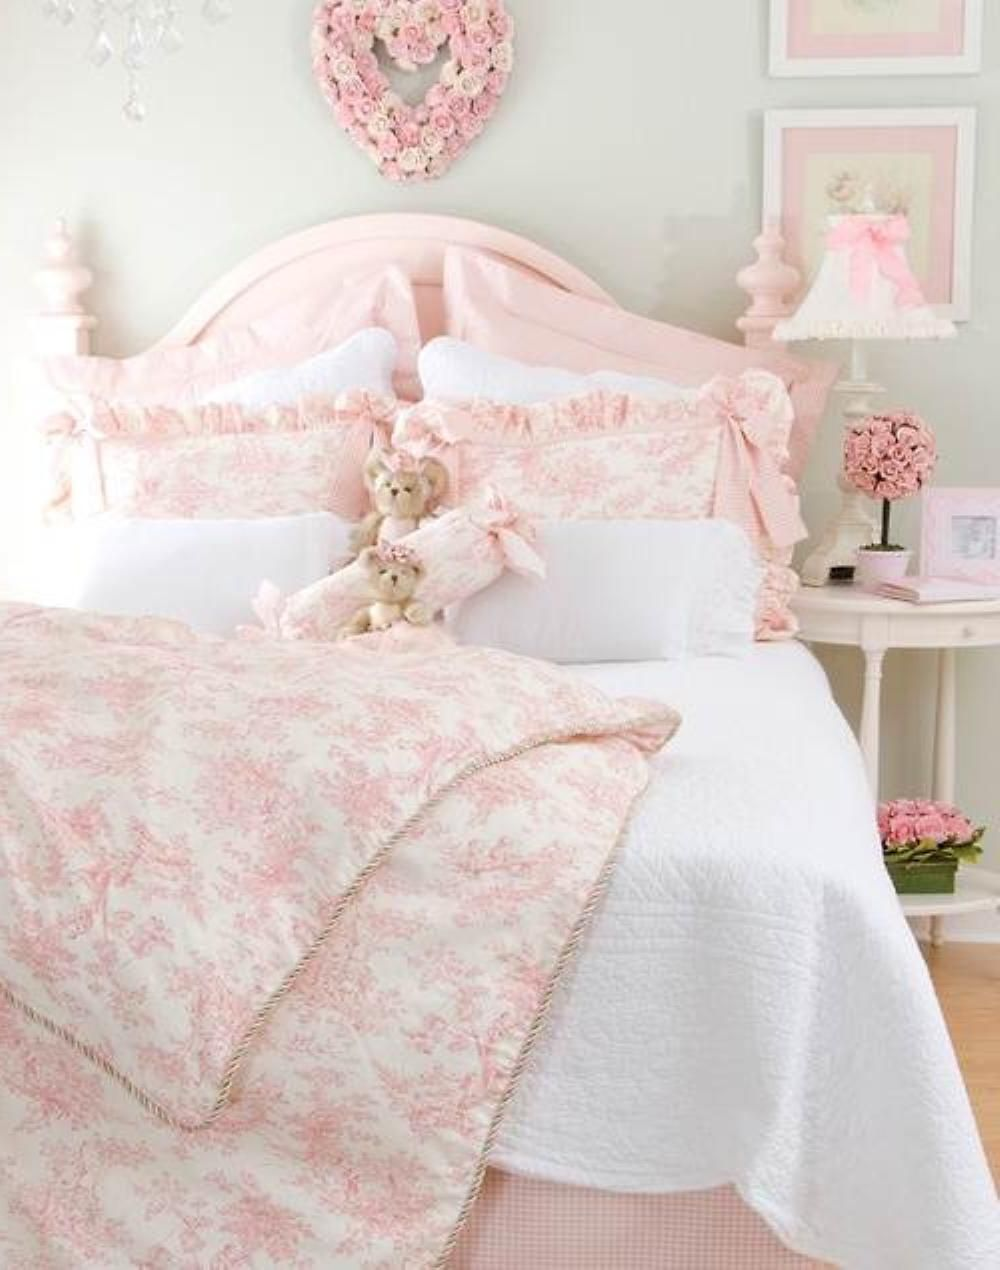 Diy Shabby Decor 10 Simple Projects To Add Pink Your Room